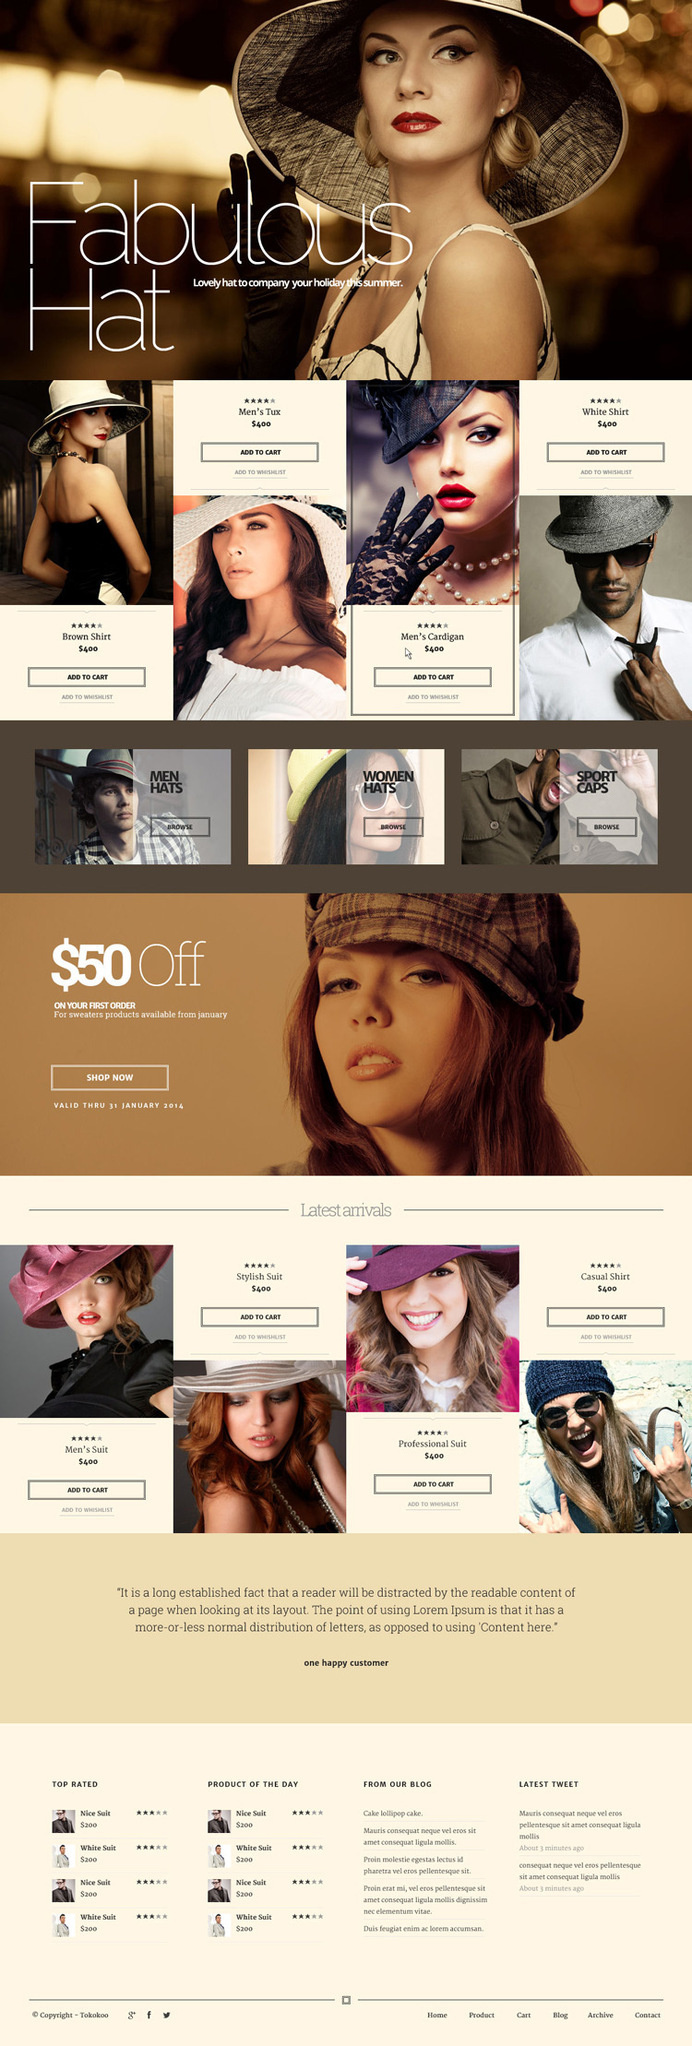 fashion, hat, ecommerce, brown, concept, layout, website #ecommerce #website #brown #hat #concept #fashion #layout